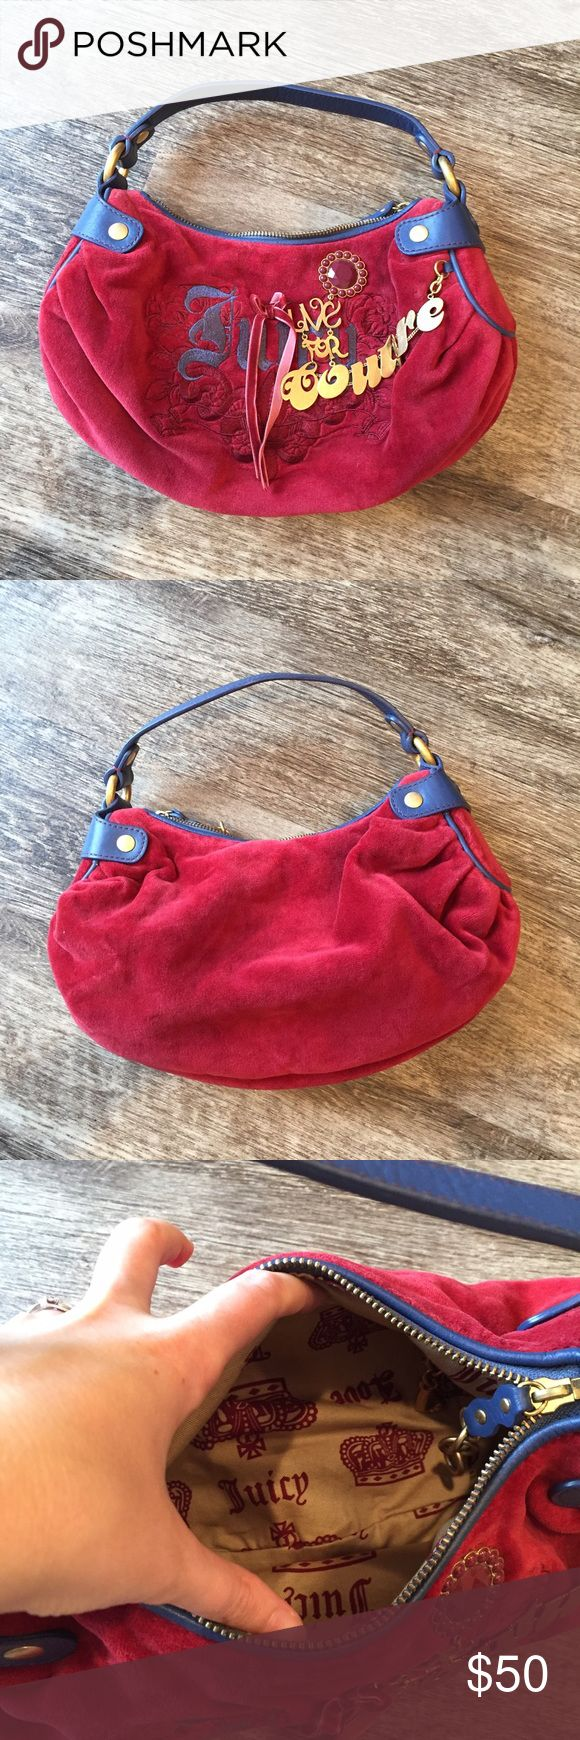 Live for Juicy Handbag Navy handle and red bag, amazing condition! AUTHENTIC Juicy Couture Bags Hobos